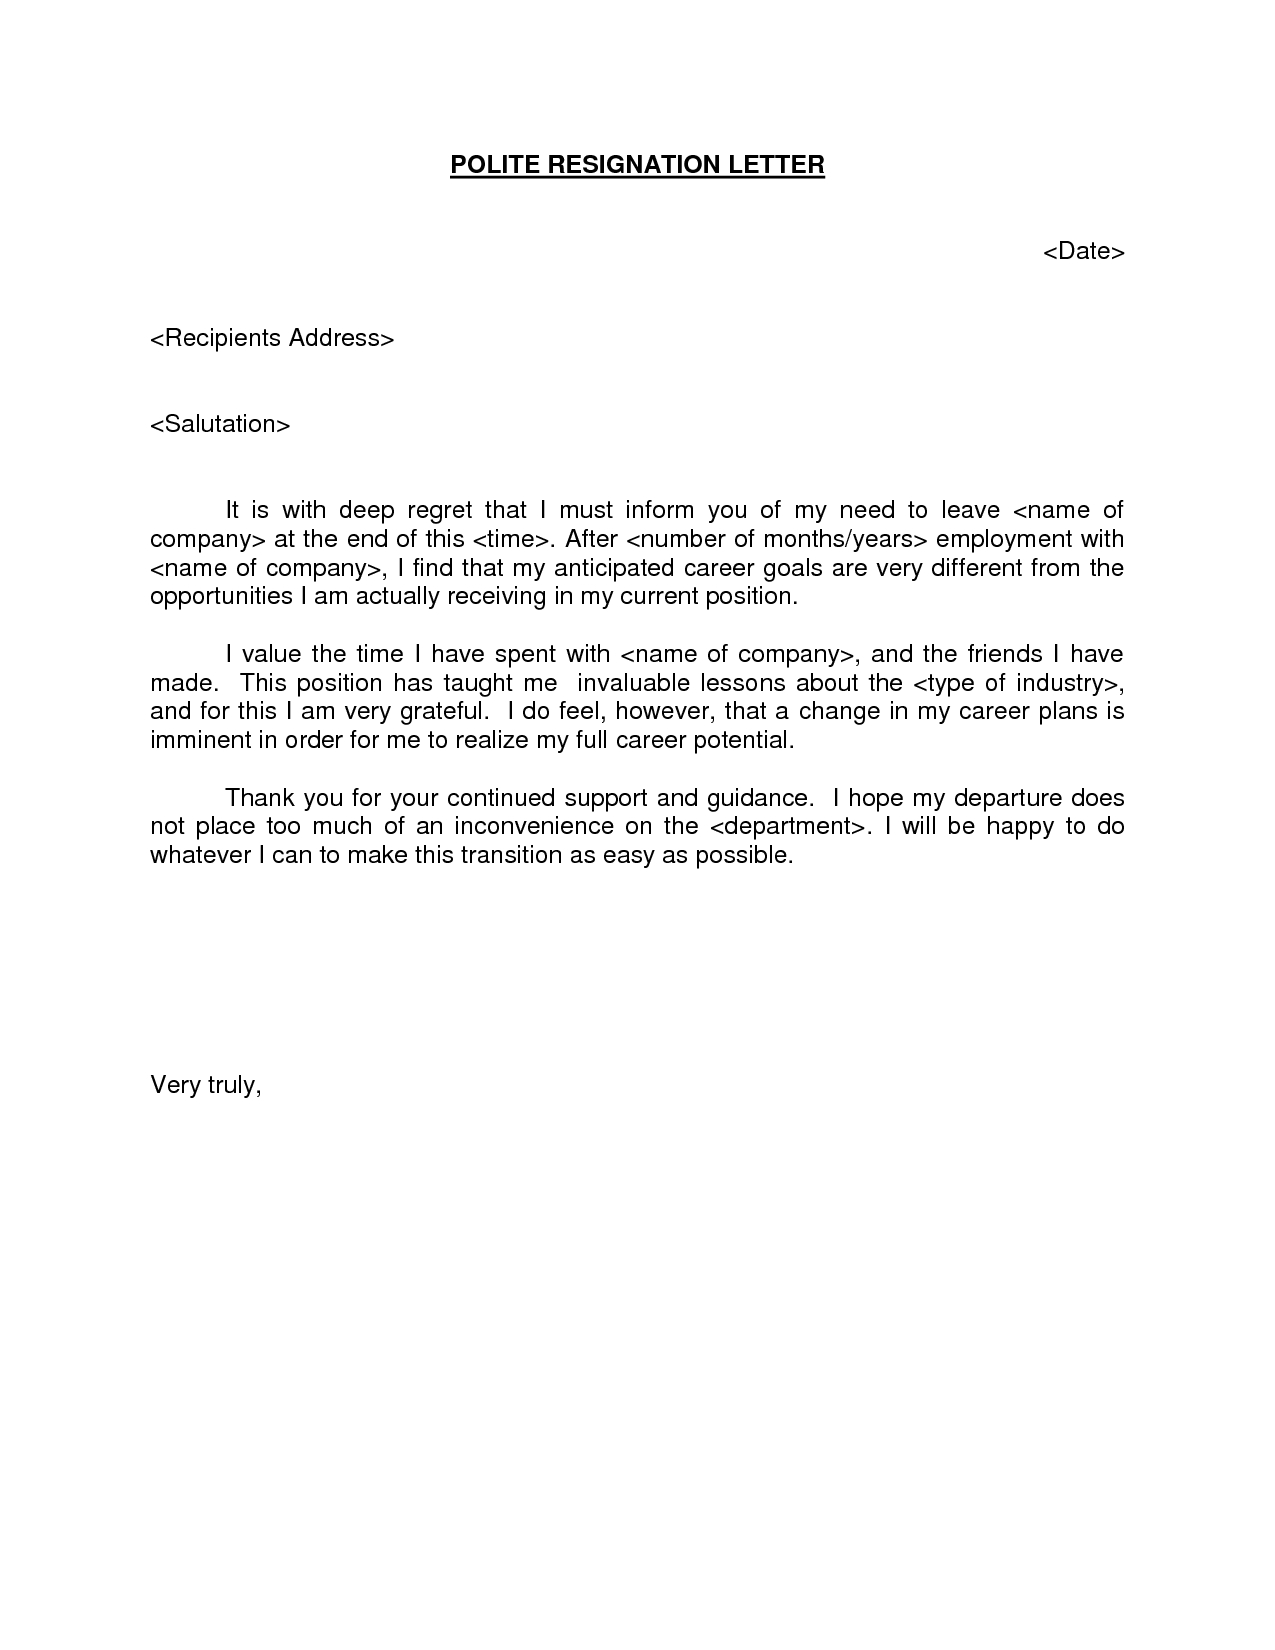 Resignation Letter Template Word Free - Polite Resignation Letter Bestdealformoneywriting A Letter